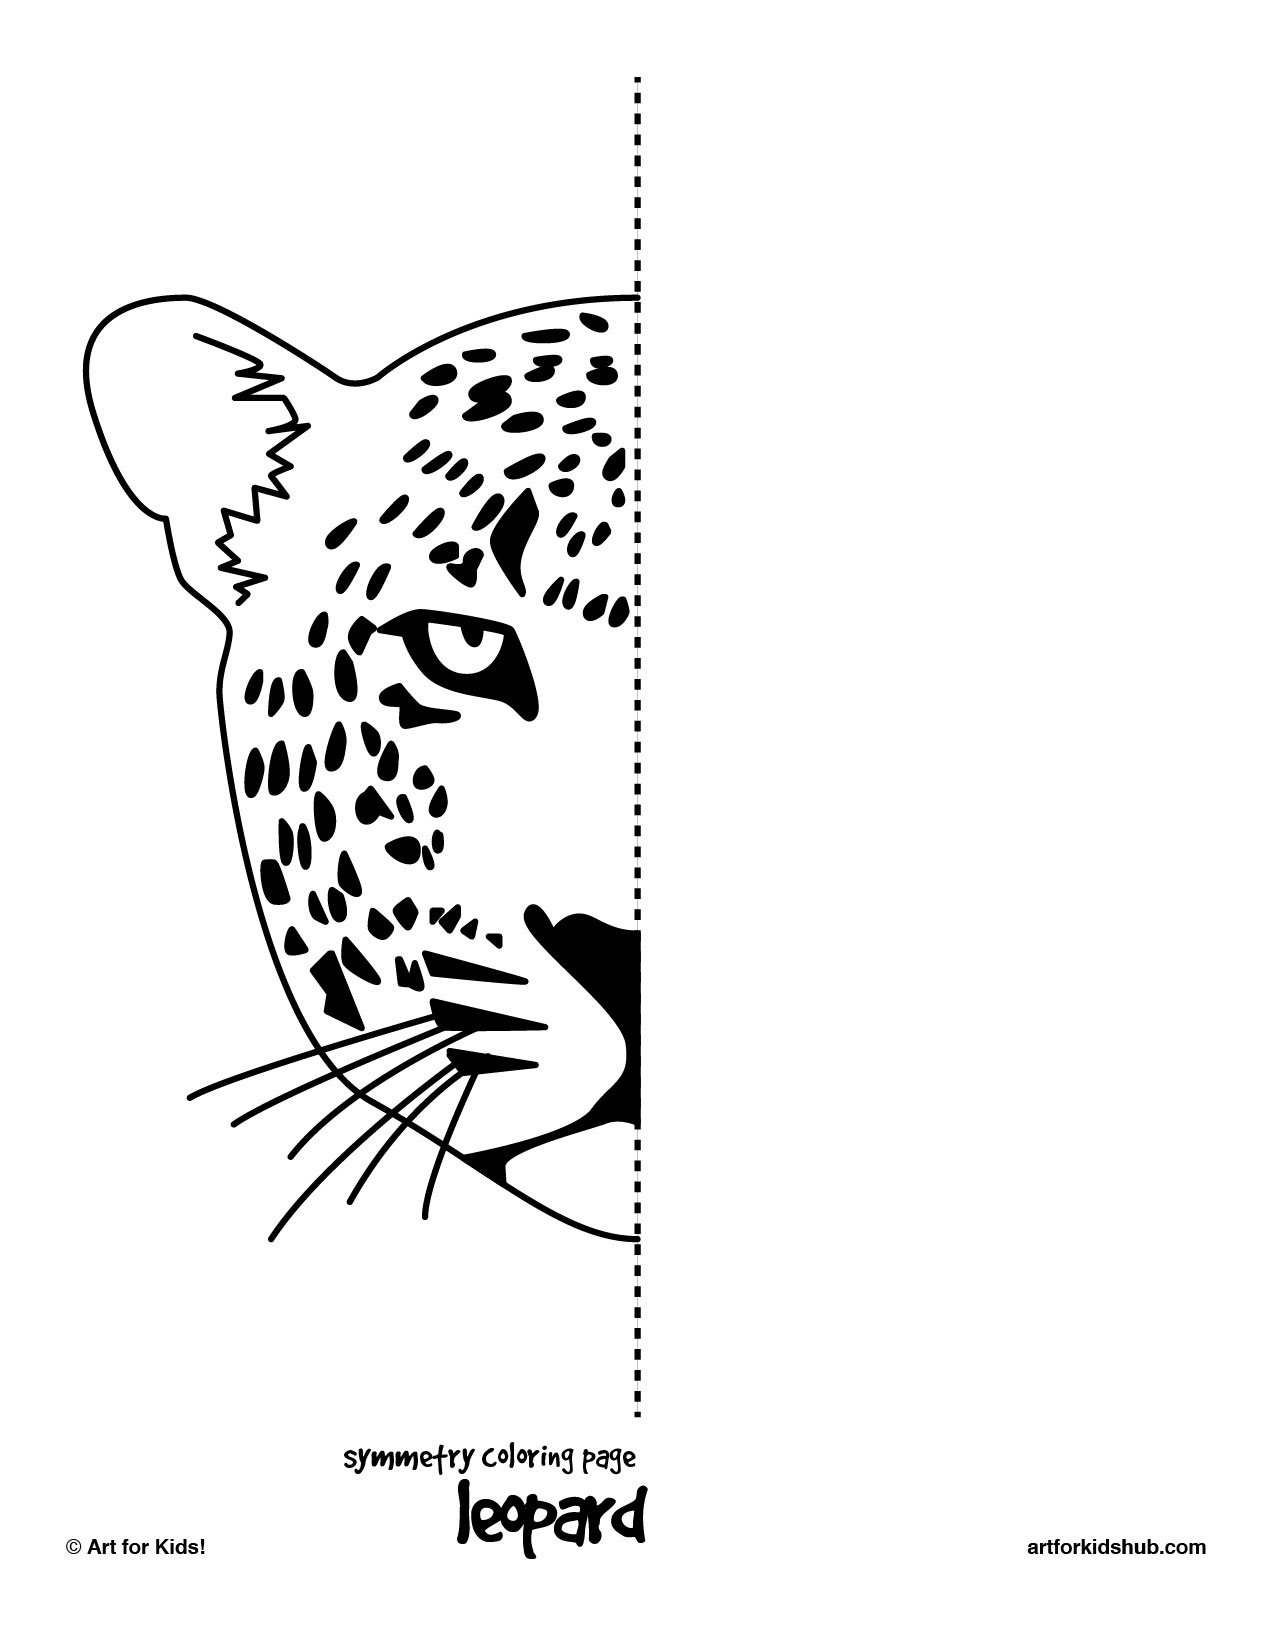 16 Best Images Of Symmetry Art Worksheets